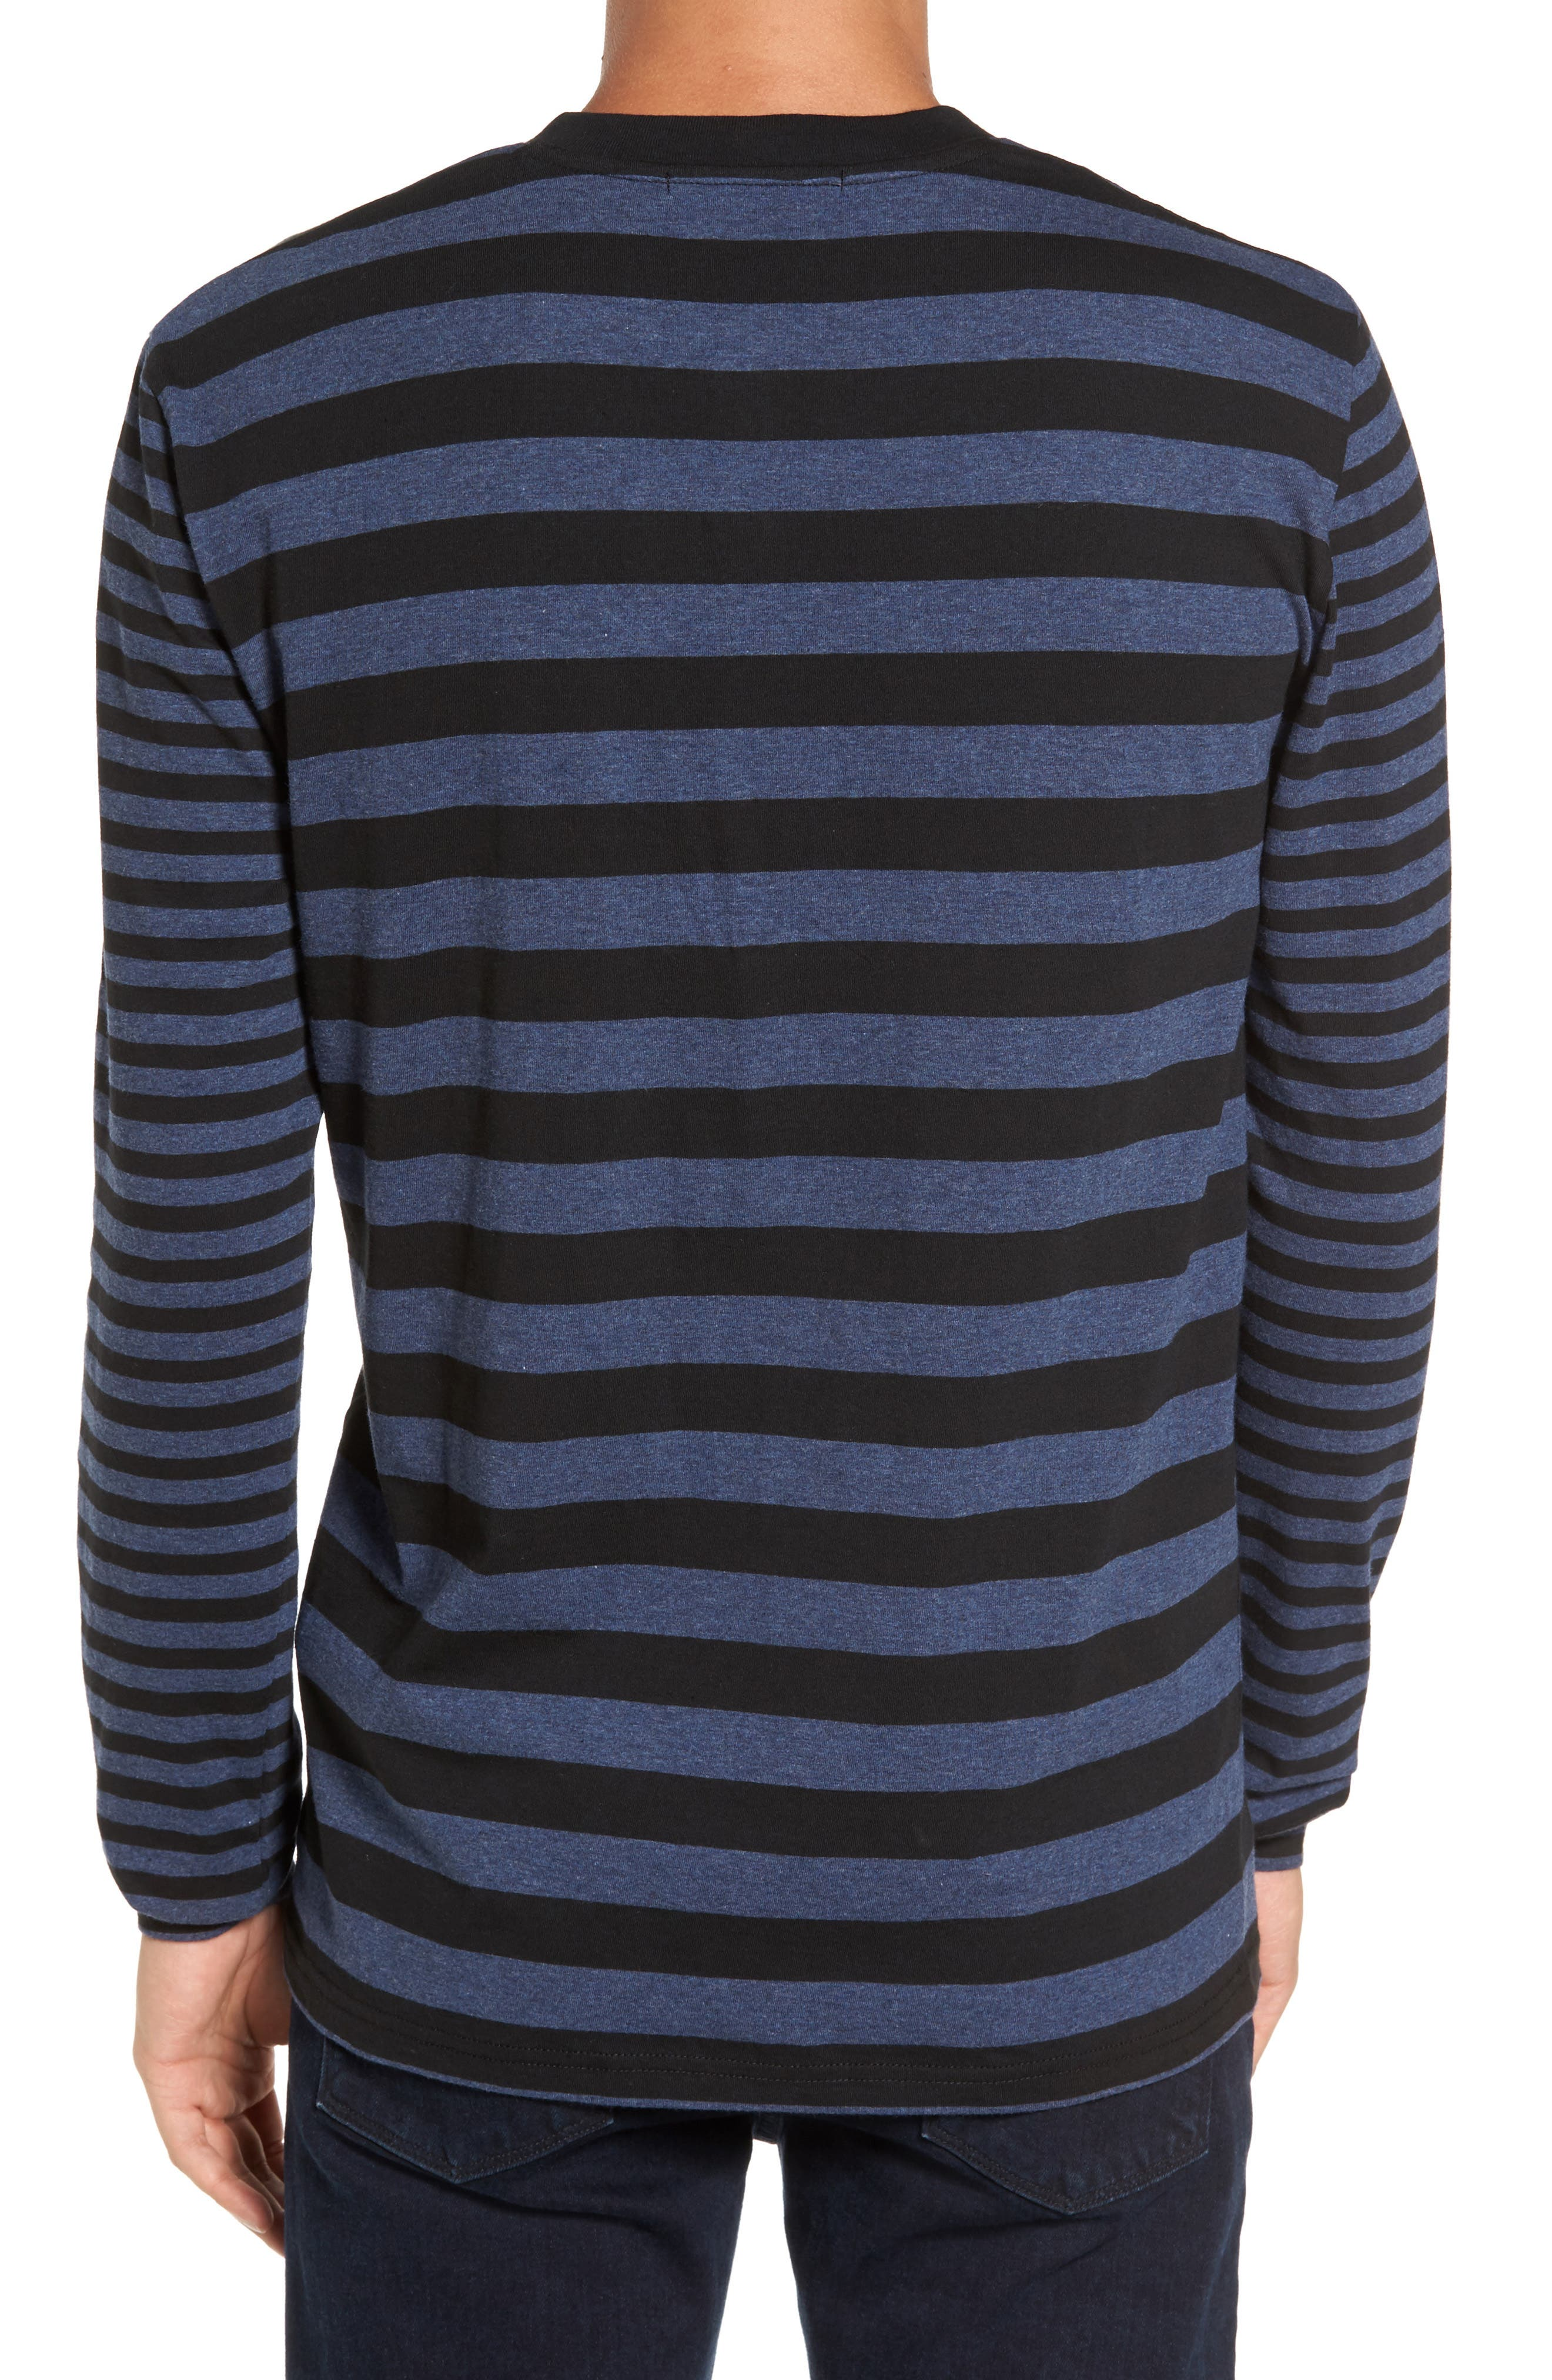 Striped Long Sleeve Henley T-Shirt,                             Alternate thumbnail 2, color,                             Heather Blue/ Black Stripe